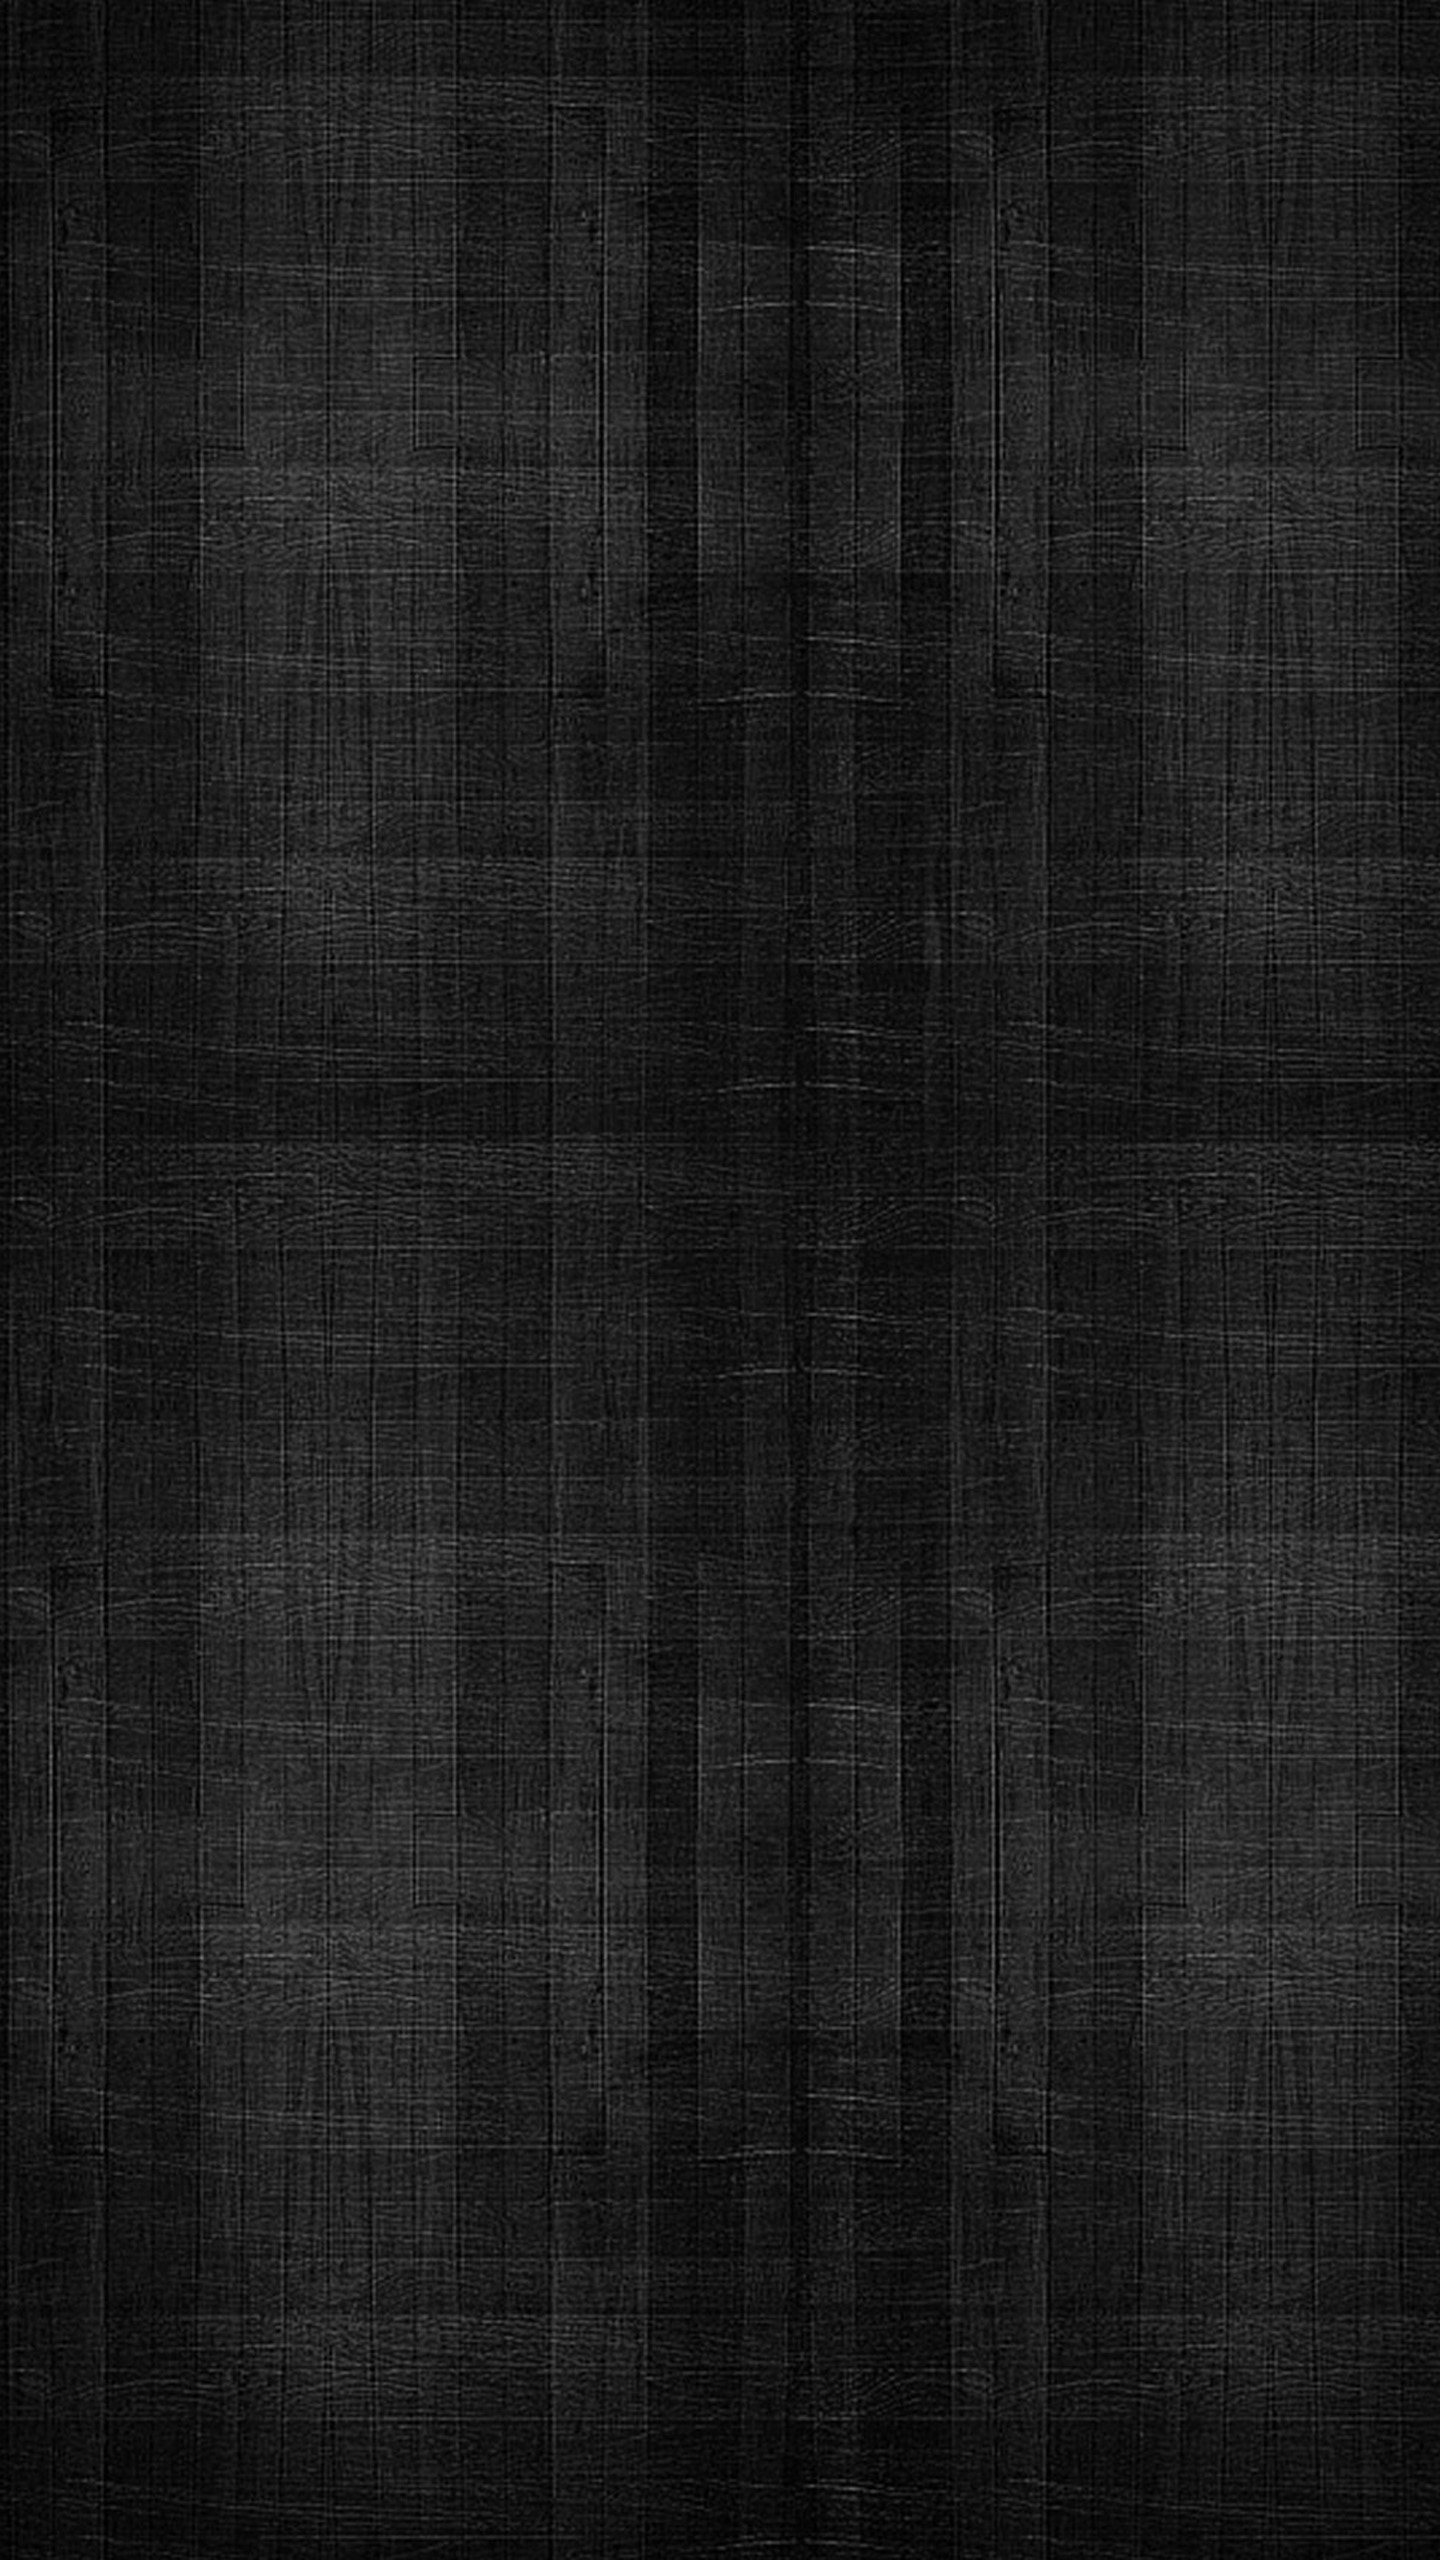 1440x2560 - Dark Grey Wallpapers 21